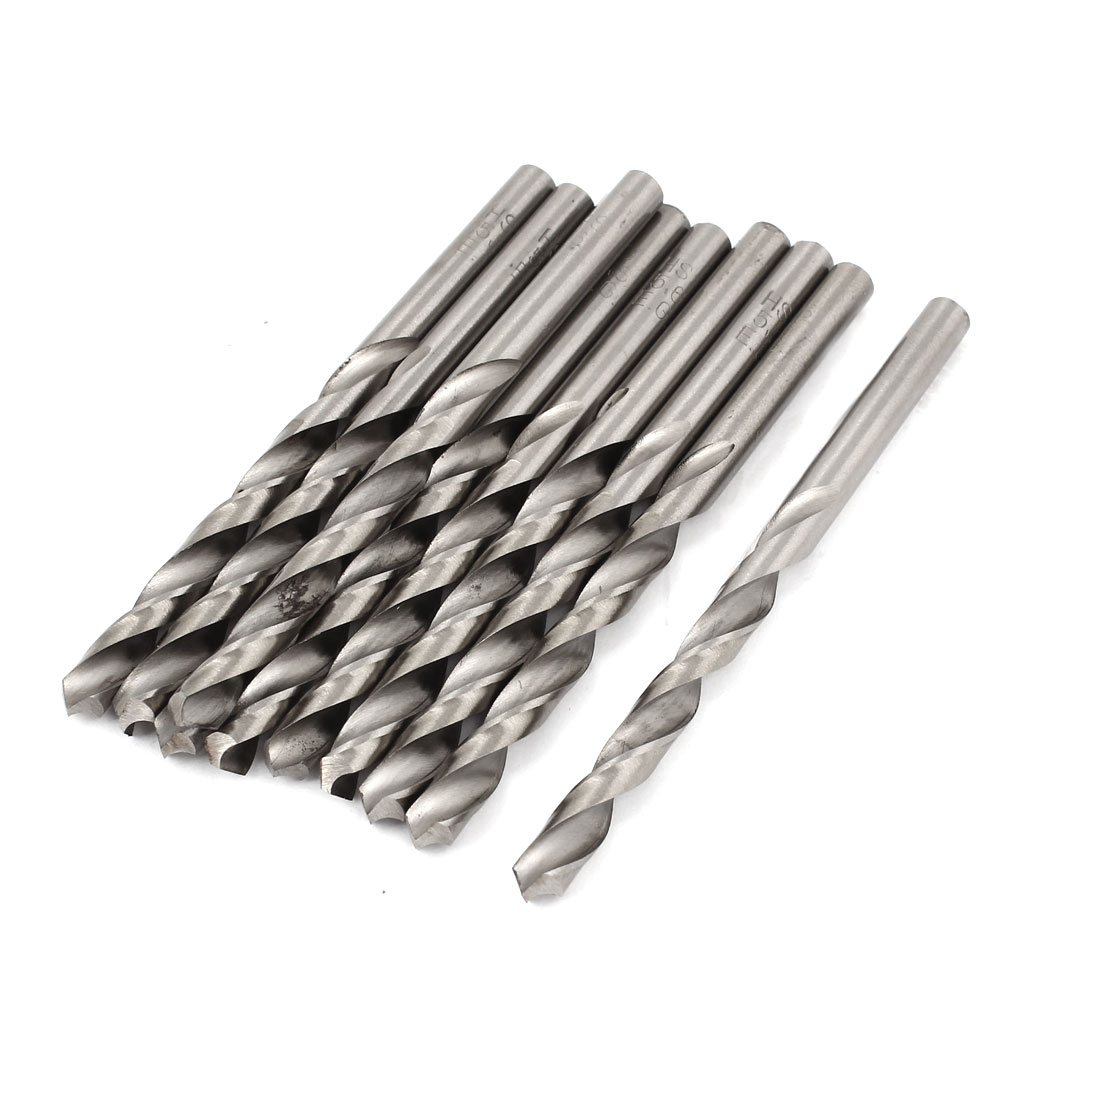 10 Pcs 62mm Length Flute 6.4mm Dia Metal Marble HSS Twist Drilling Drill Bit